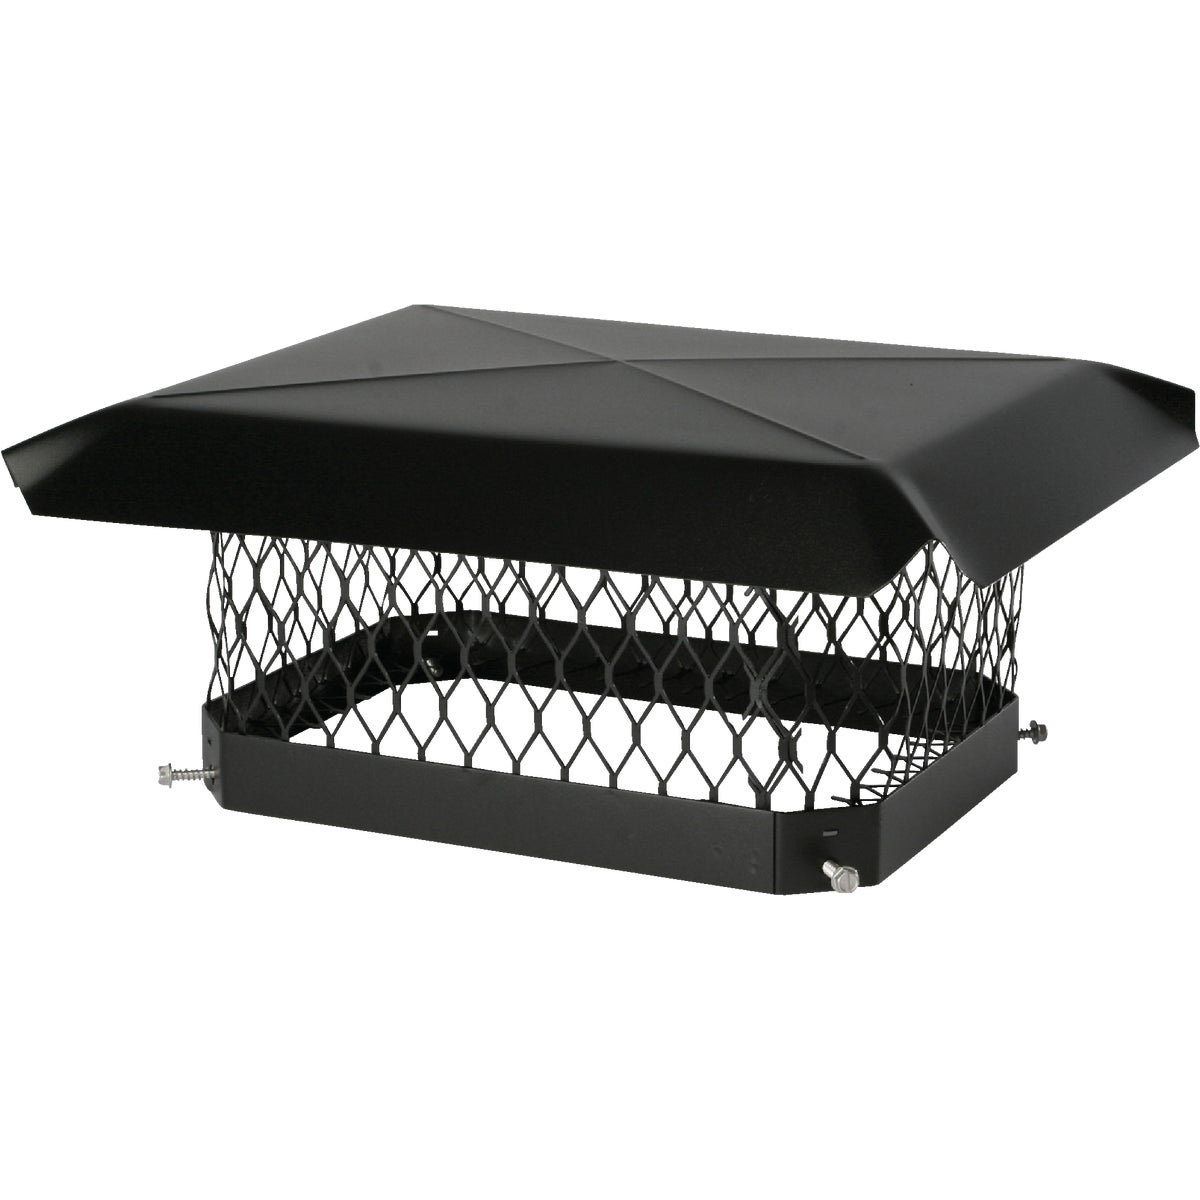 9X18 BLACK CHIMNEY COVER